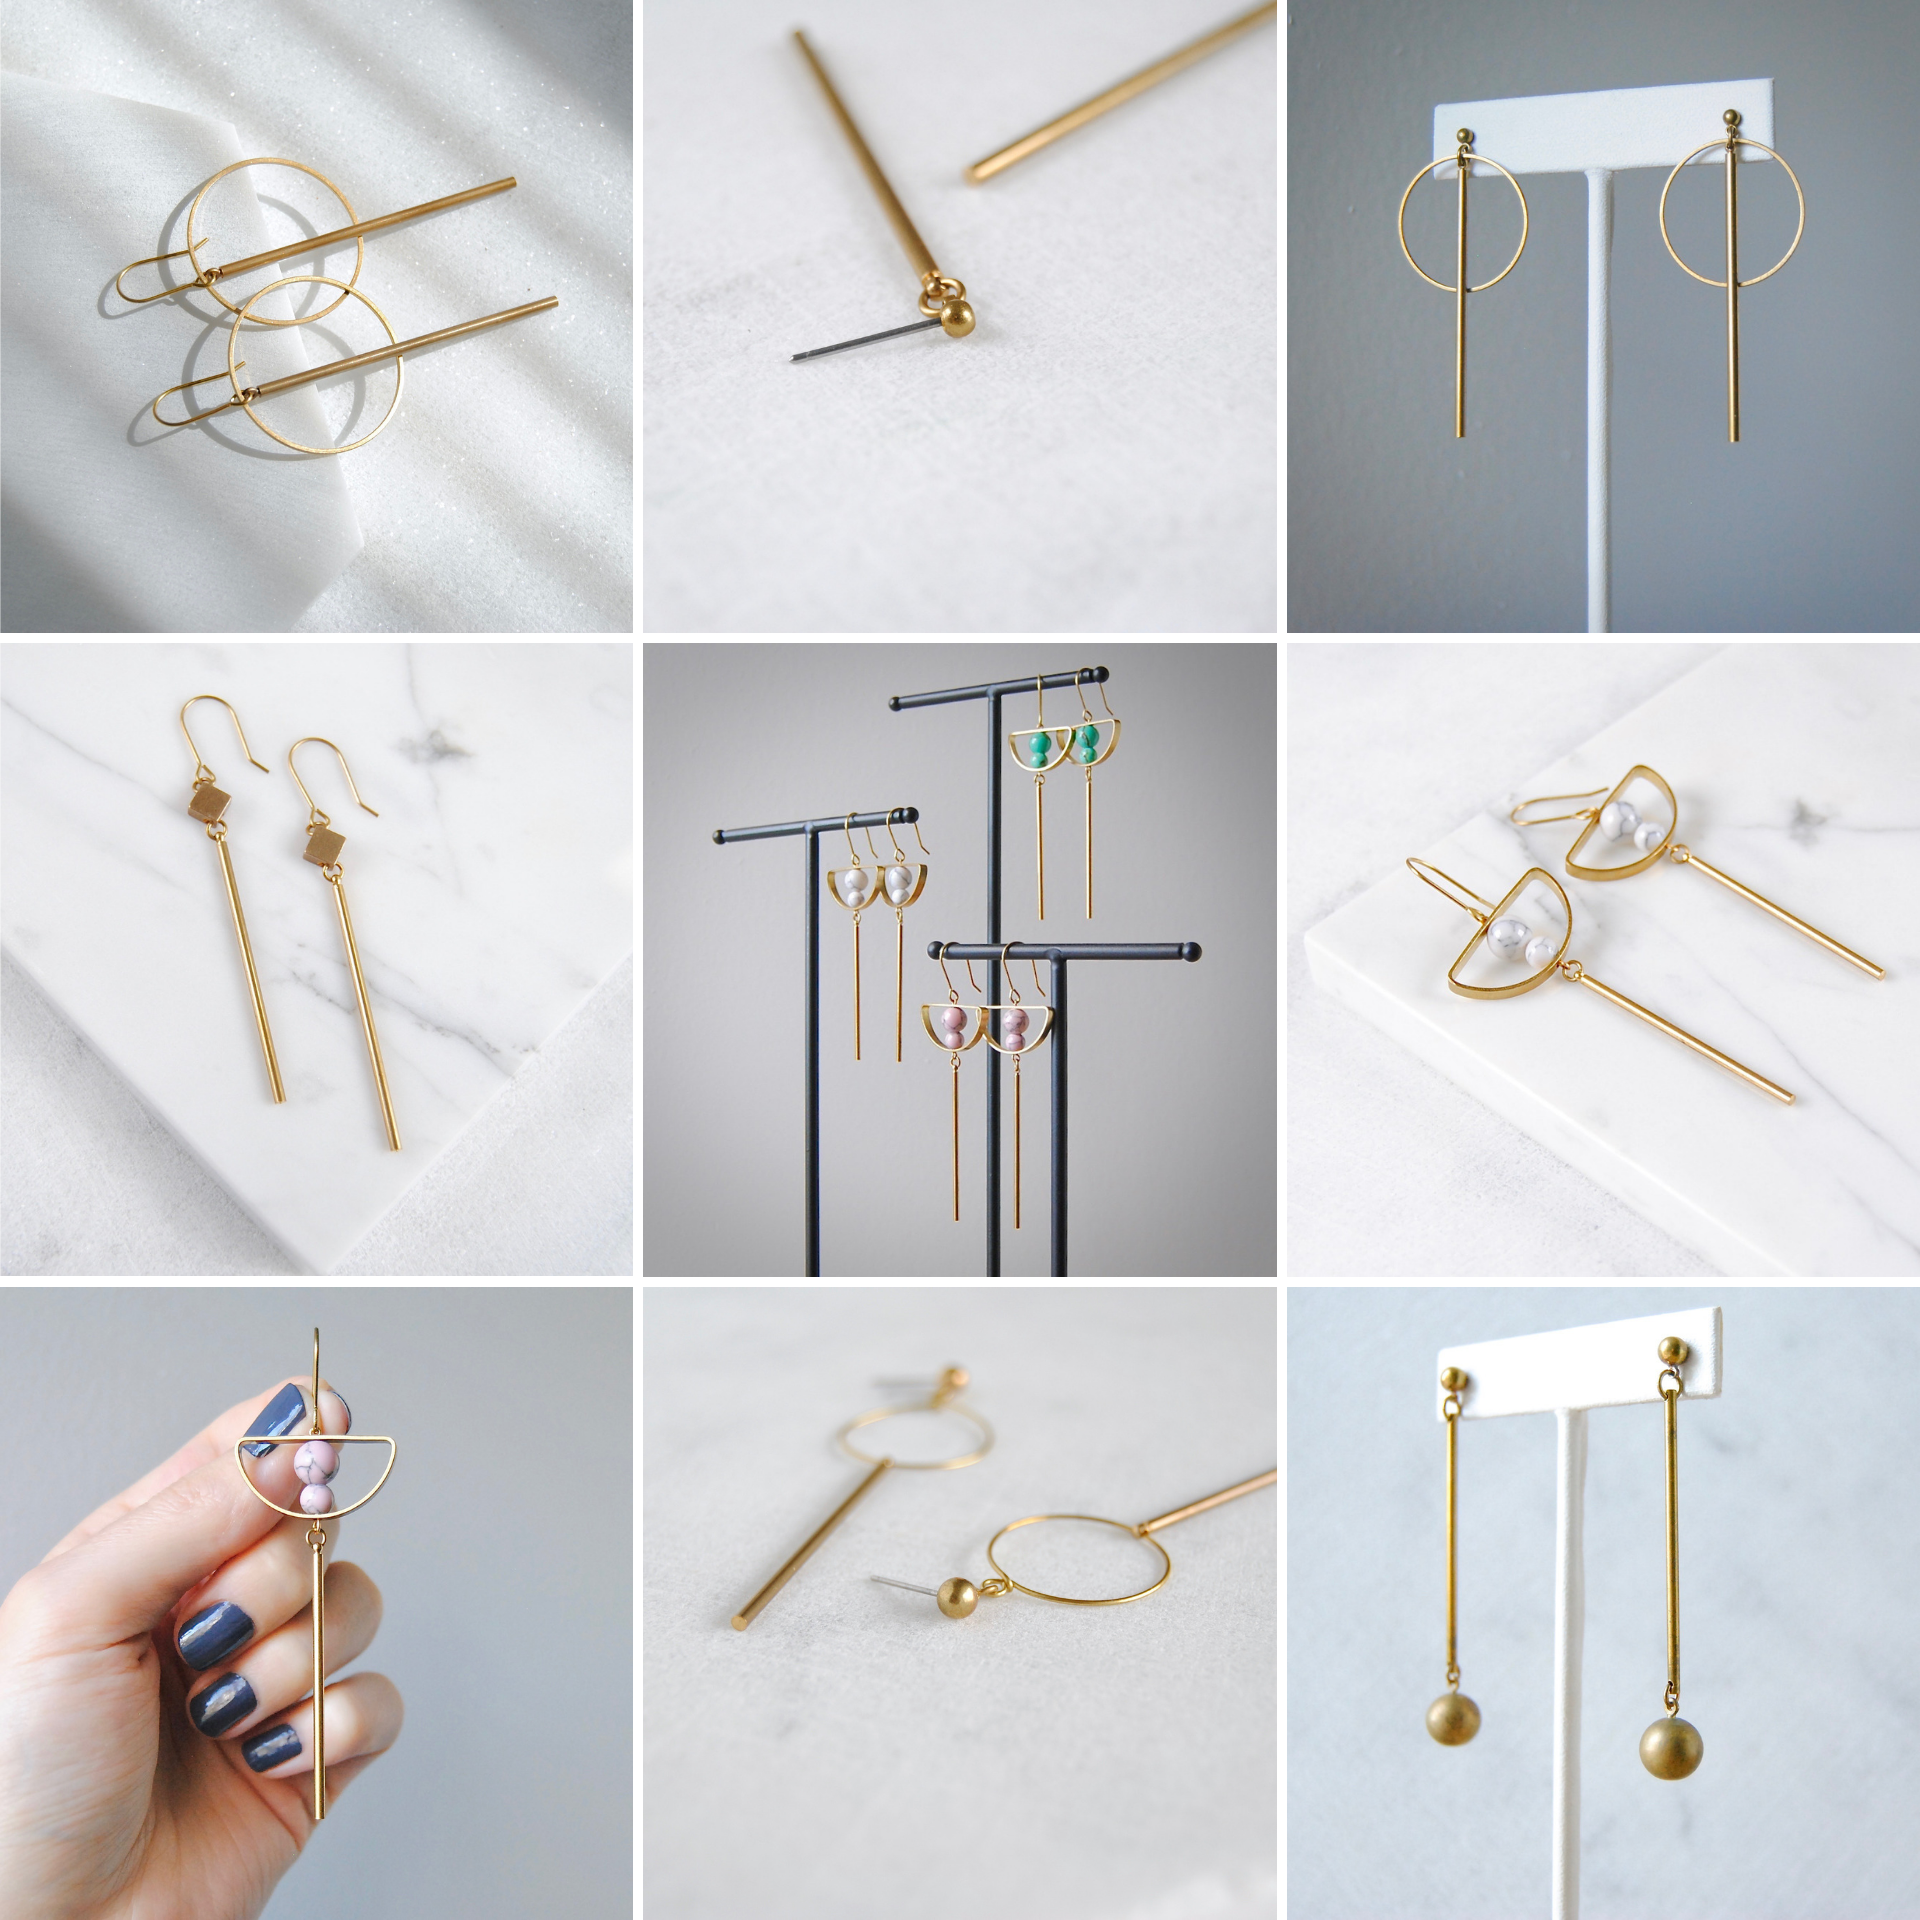 MANY BAR EARRING STYLES AVAILABLE